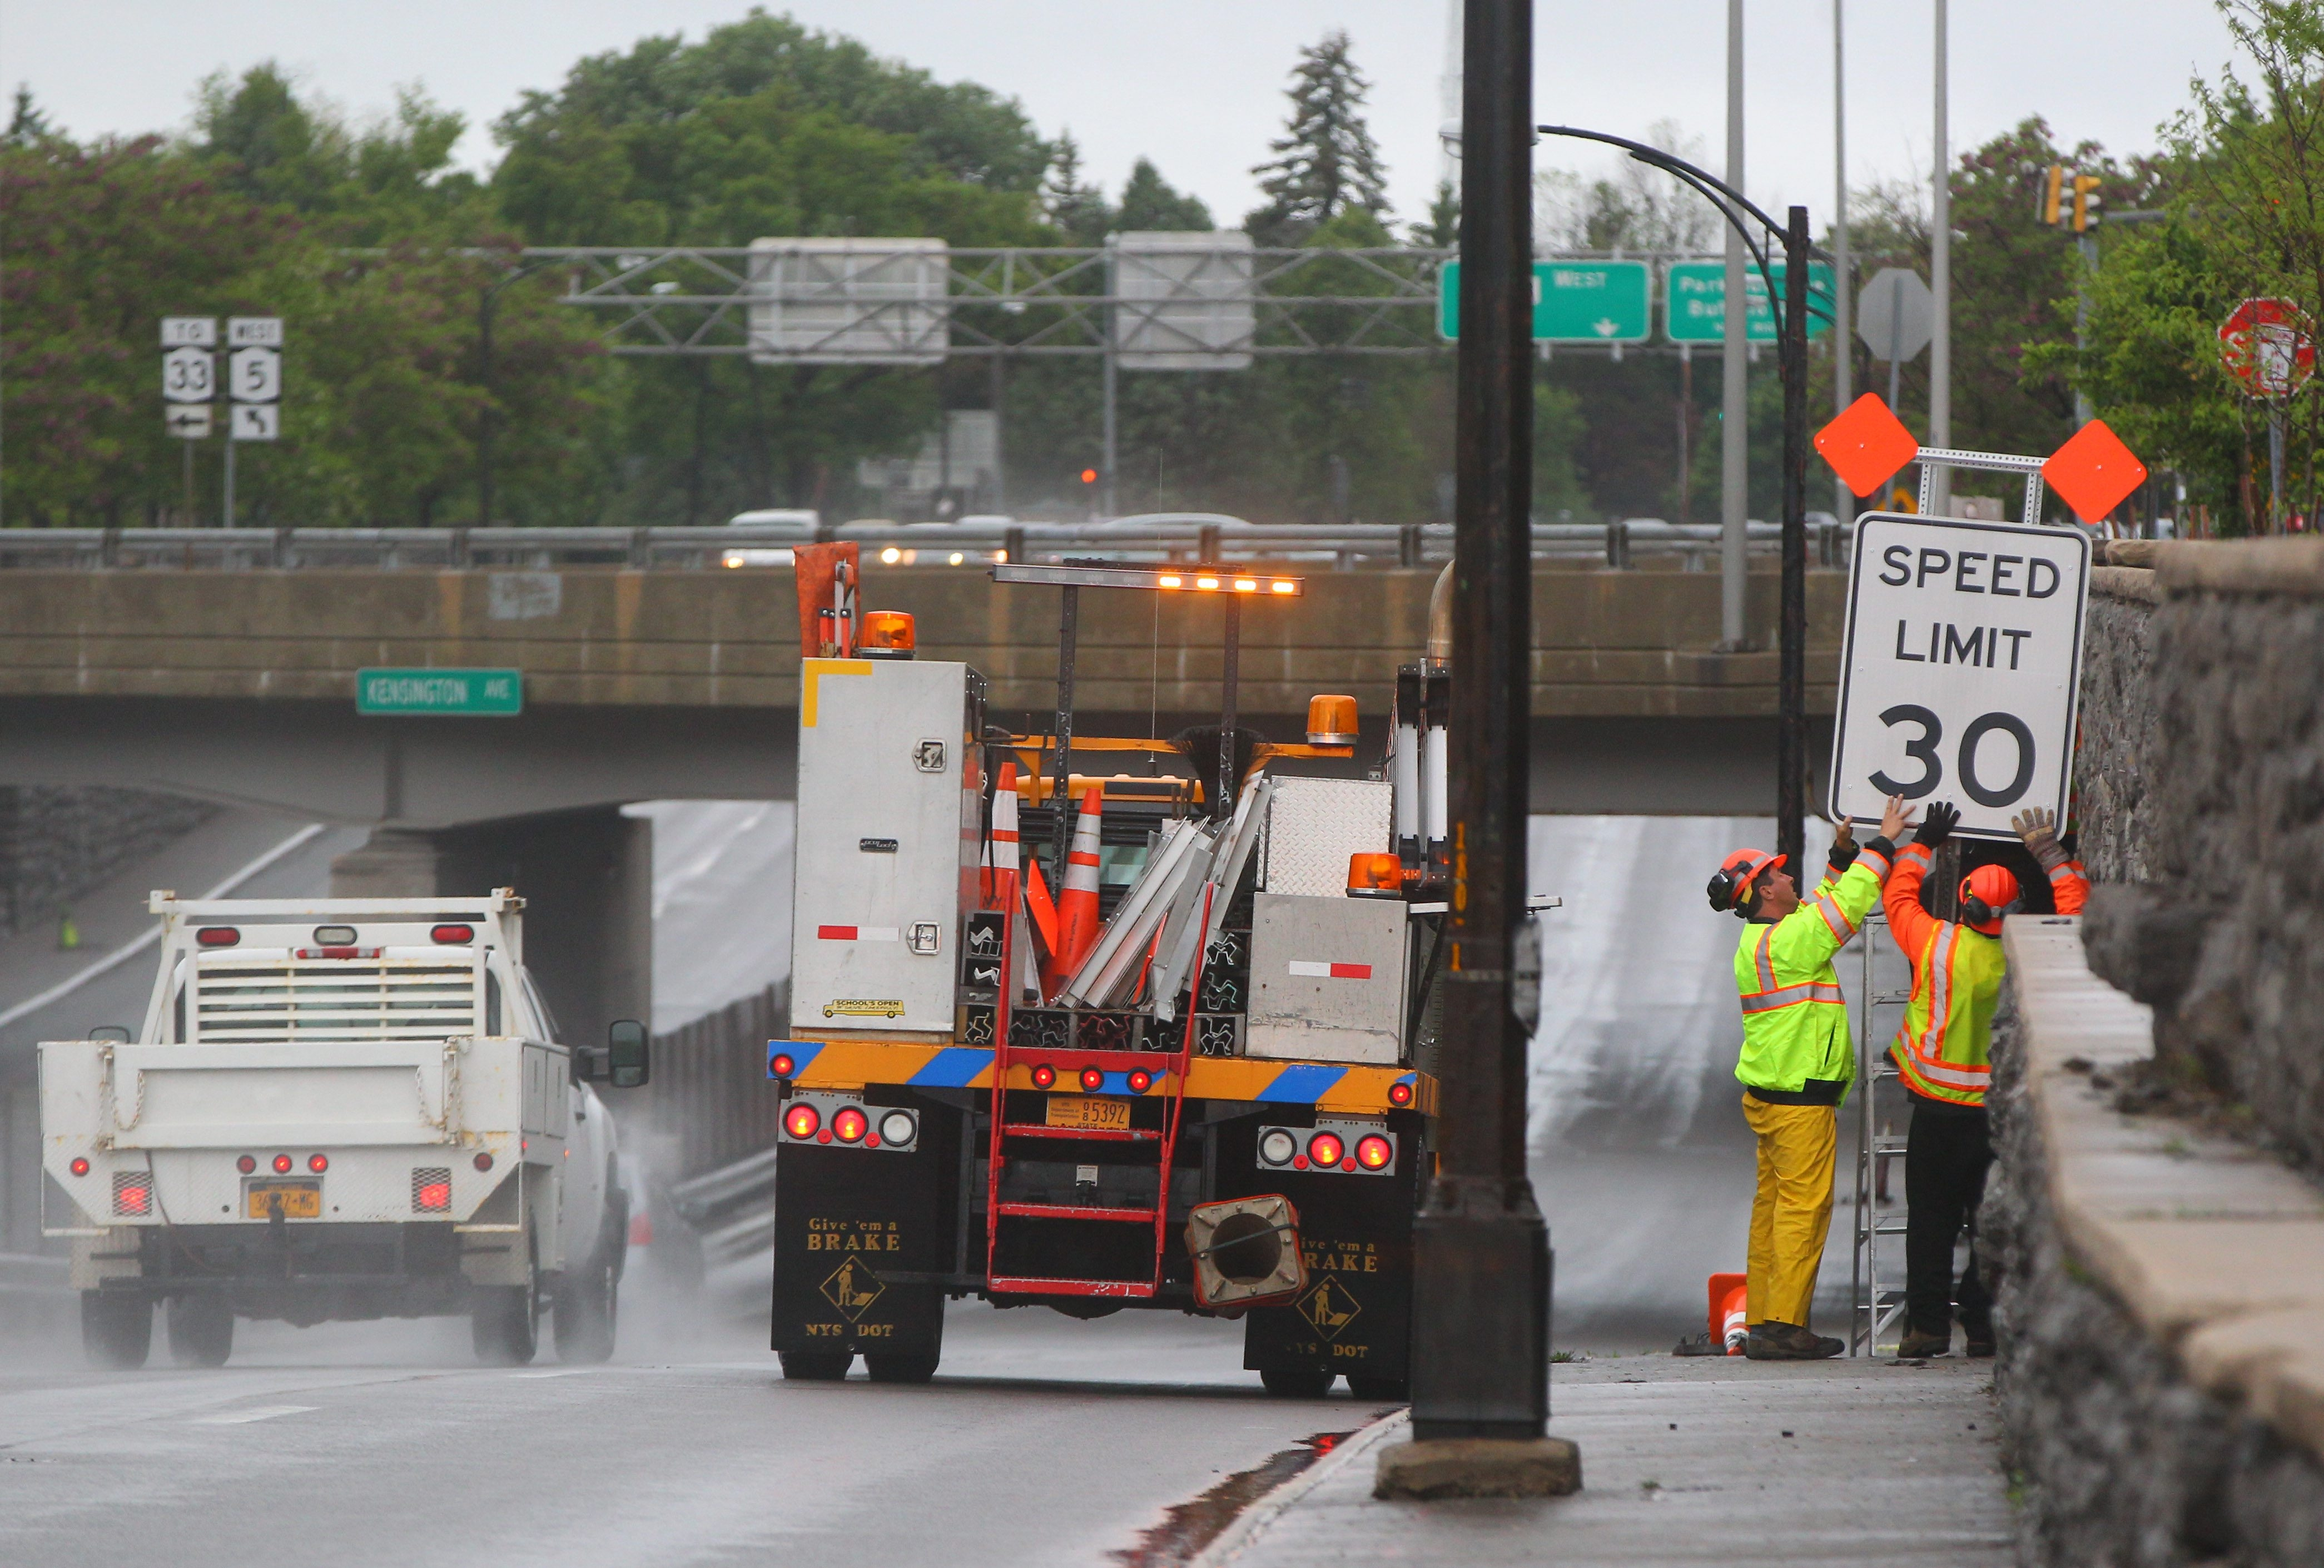 State Department of Transportation crews replace the speed limit sign on the Scajaquada Expressway (Route 198) near Main Street in Buffalo on Sunday, May 31, 2015.